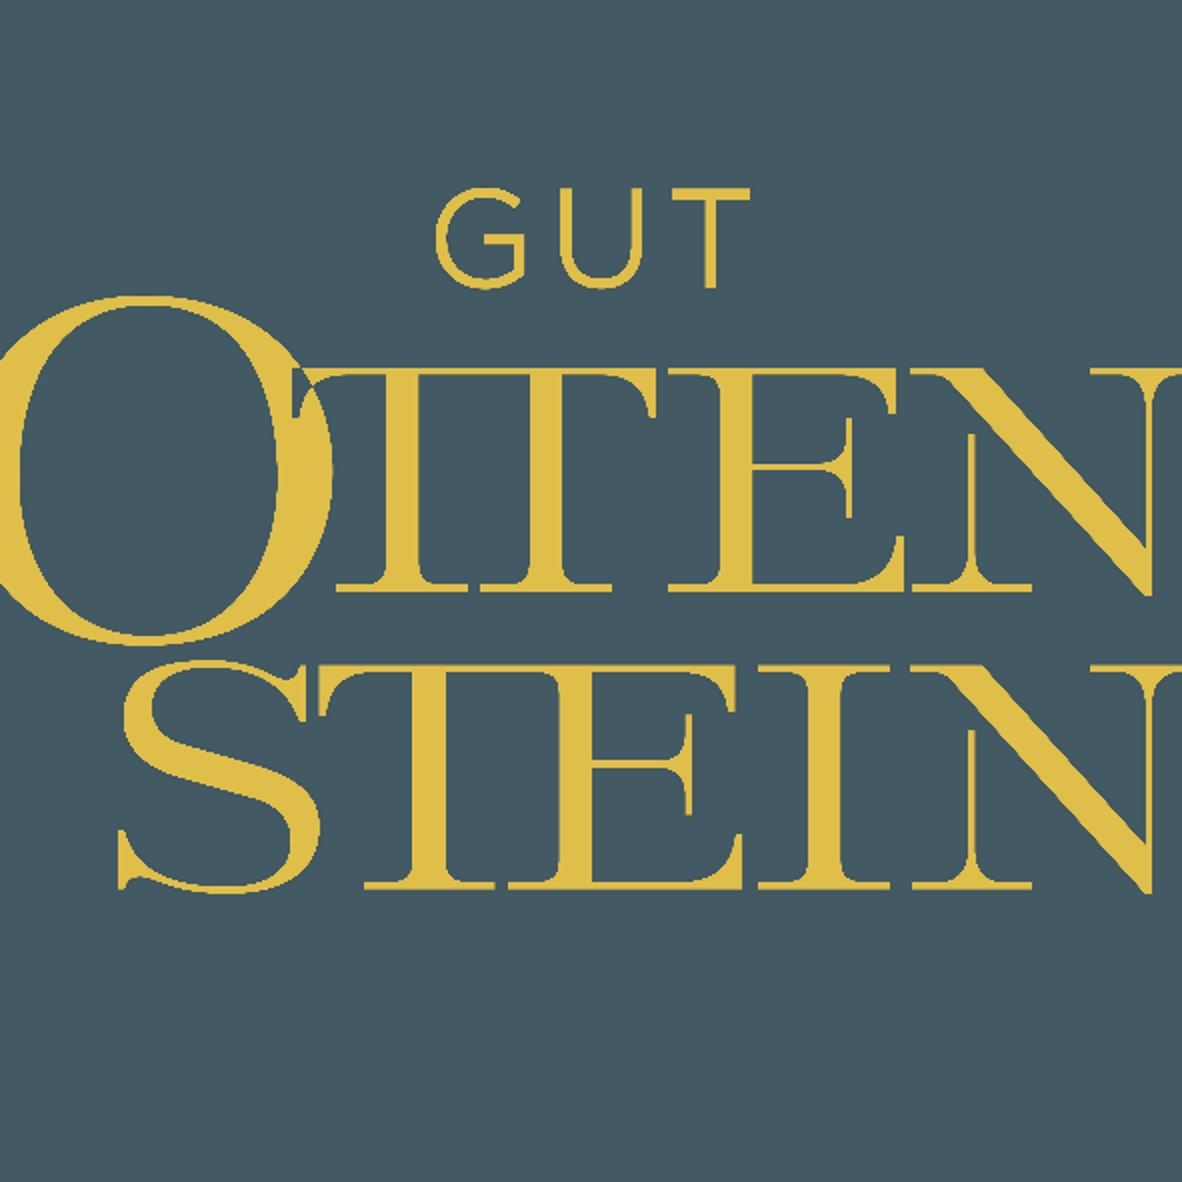 Gut Ottenstein